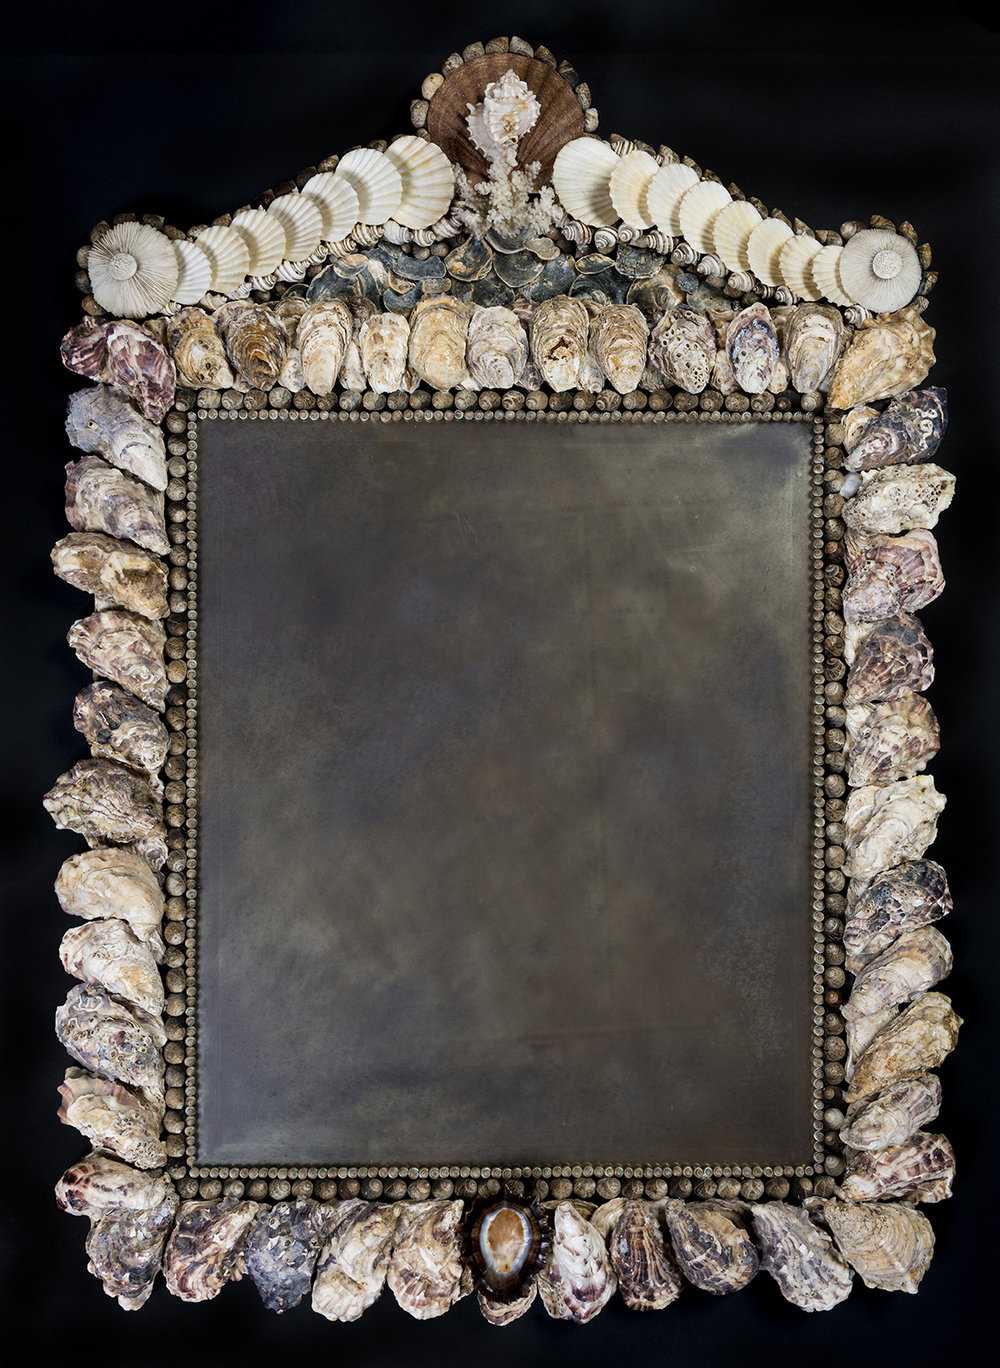 Oyster Shell Looking Glass   A rectangular looking glass with native winkle and oyster shell surround.  The pediment with scallop shell finial surmounted by a single murex and flanked by broken scrolls of white fan shells. A black South African limpet pendant to the base.  97cm x 70cm